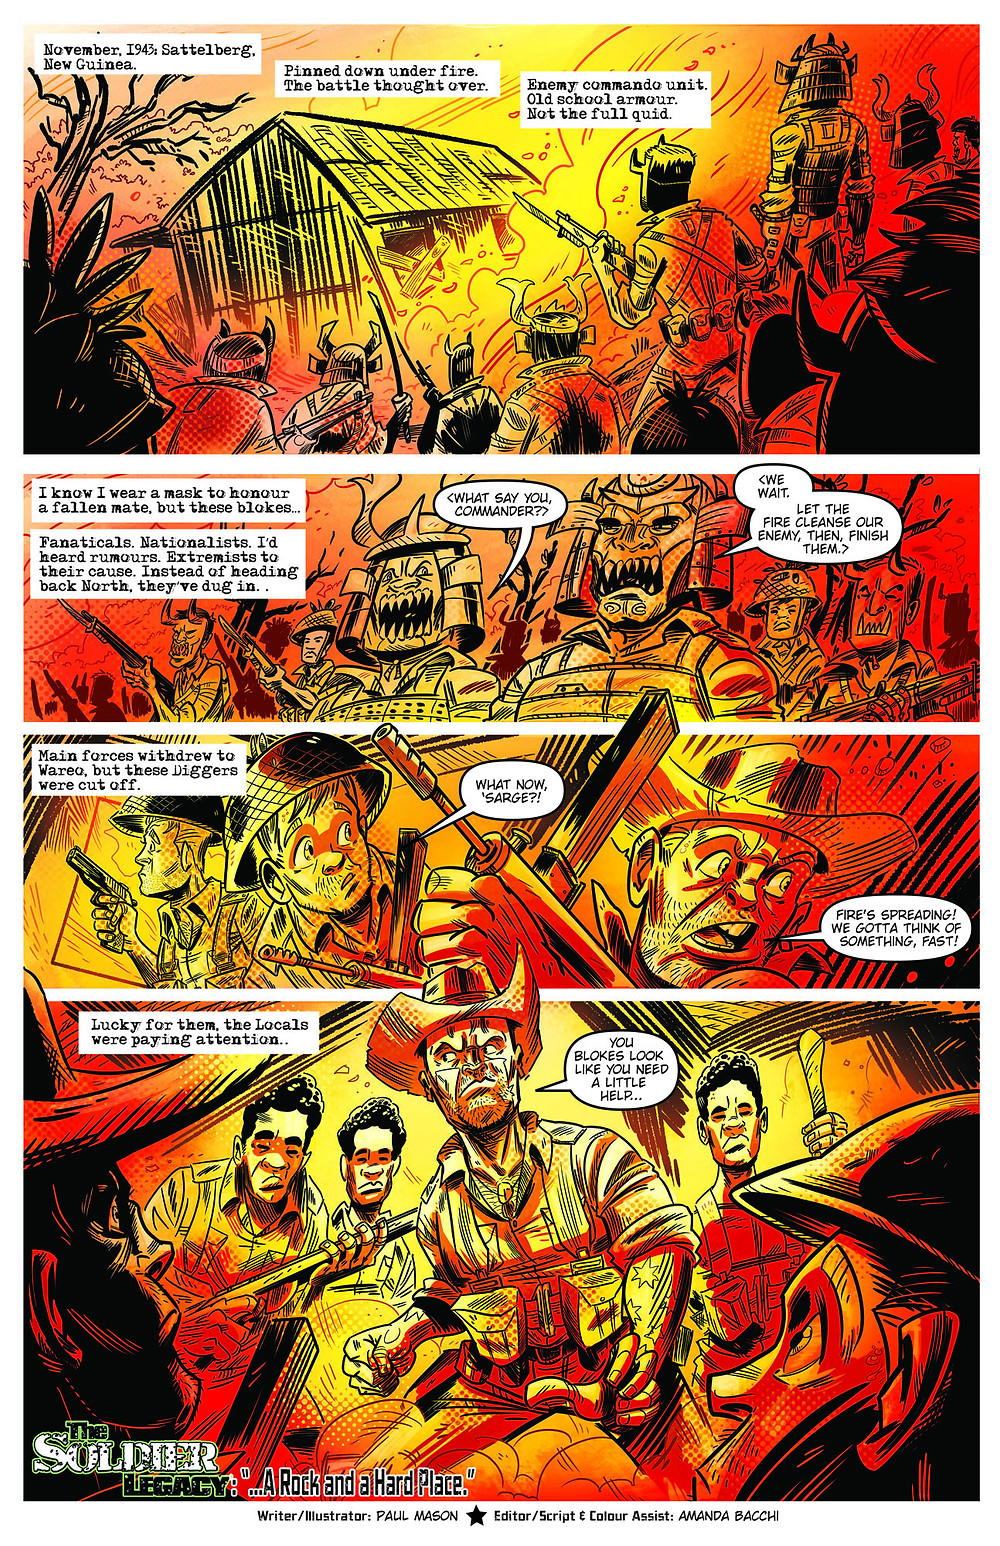 Page 1 SuperAustralians: Soldier Legacy chapter by Paul Mason and Amanda Bacchi